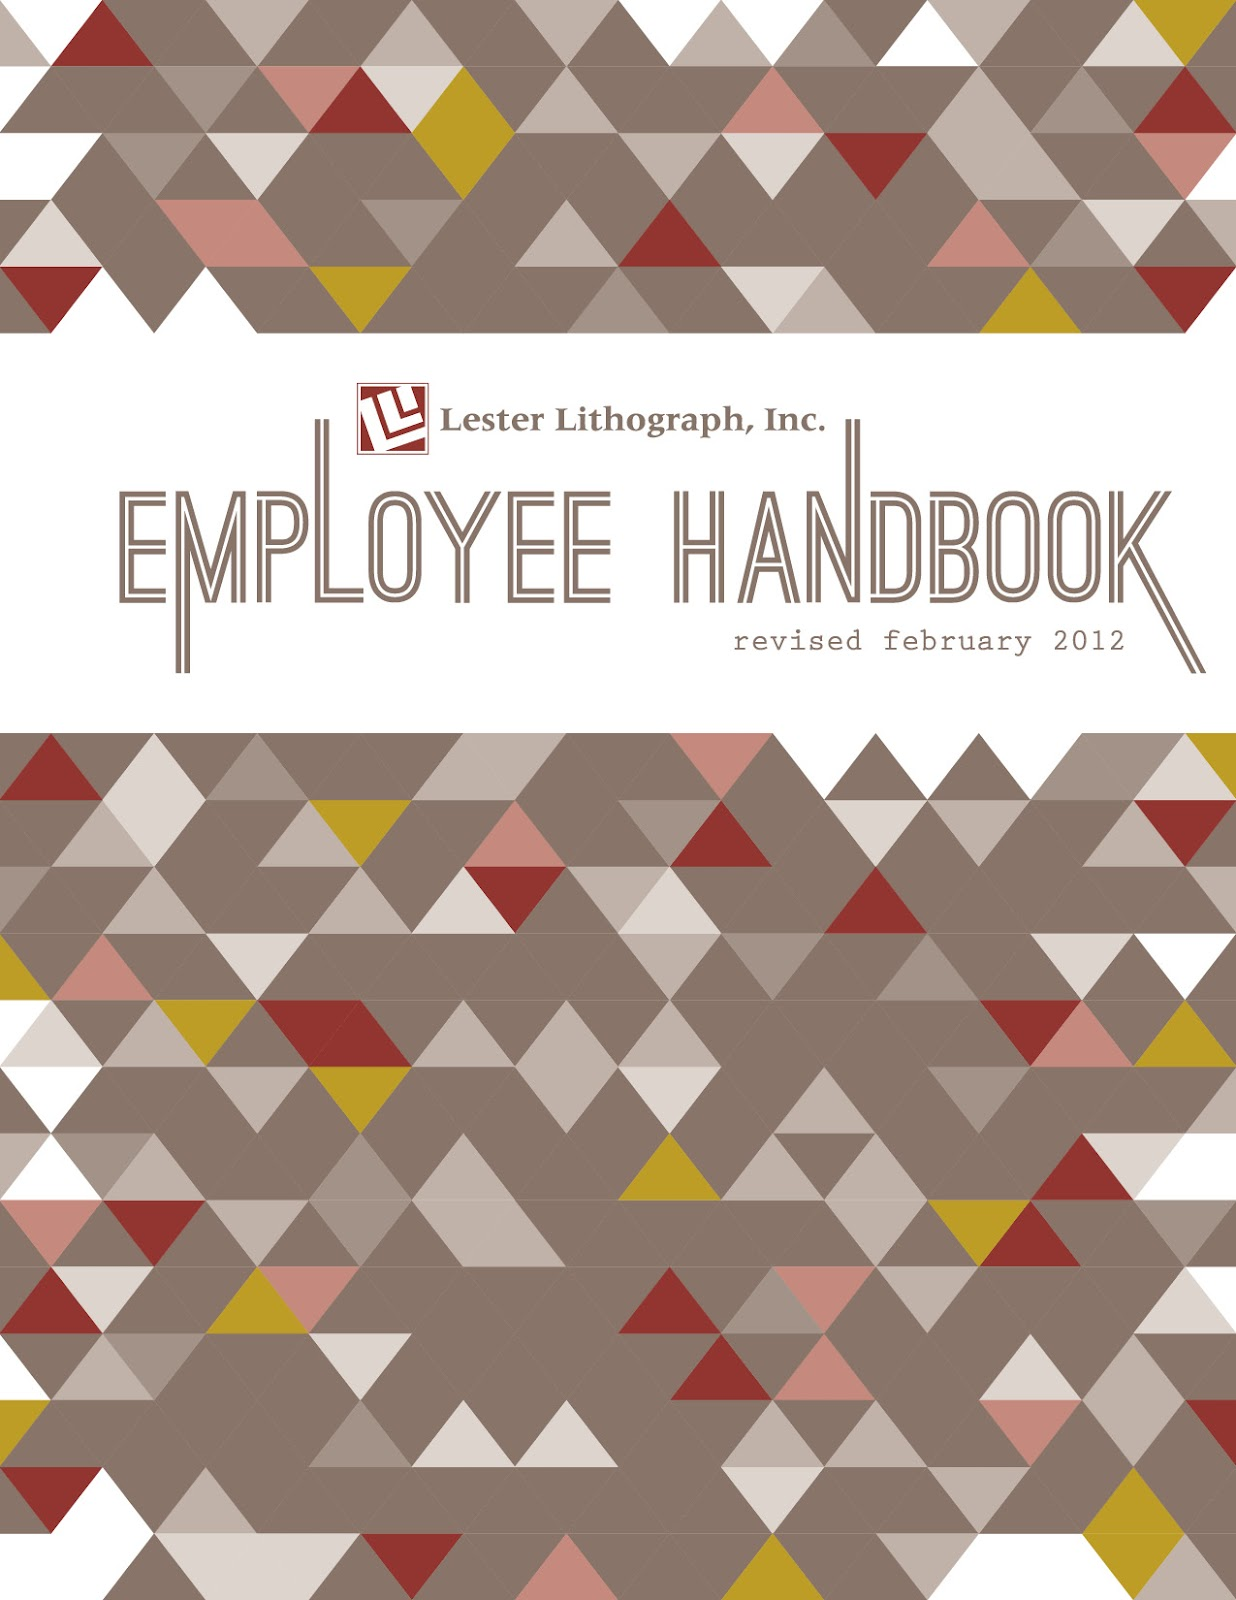 employee handbook cover design template heather l myers graphic design employee handbook cover